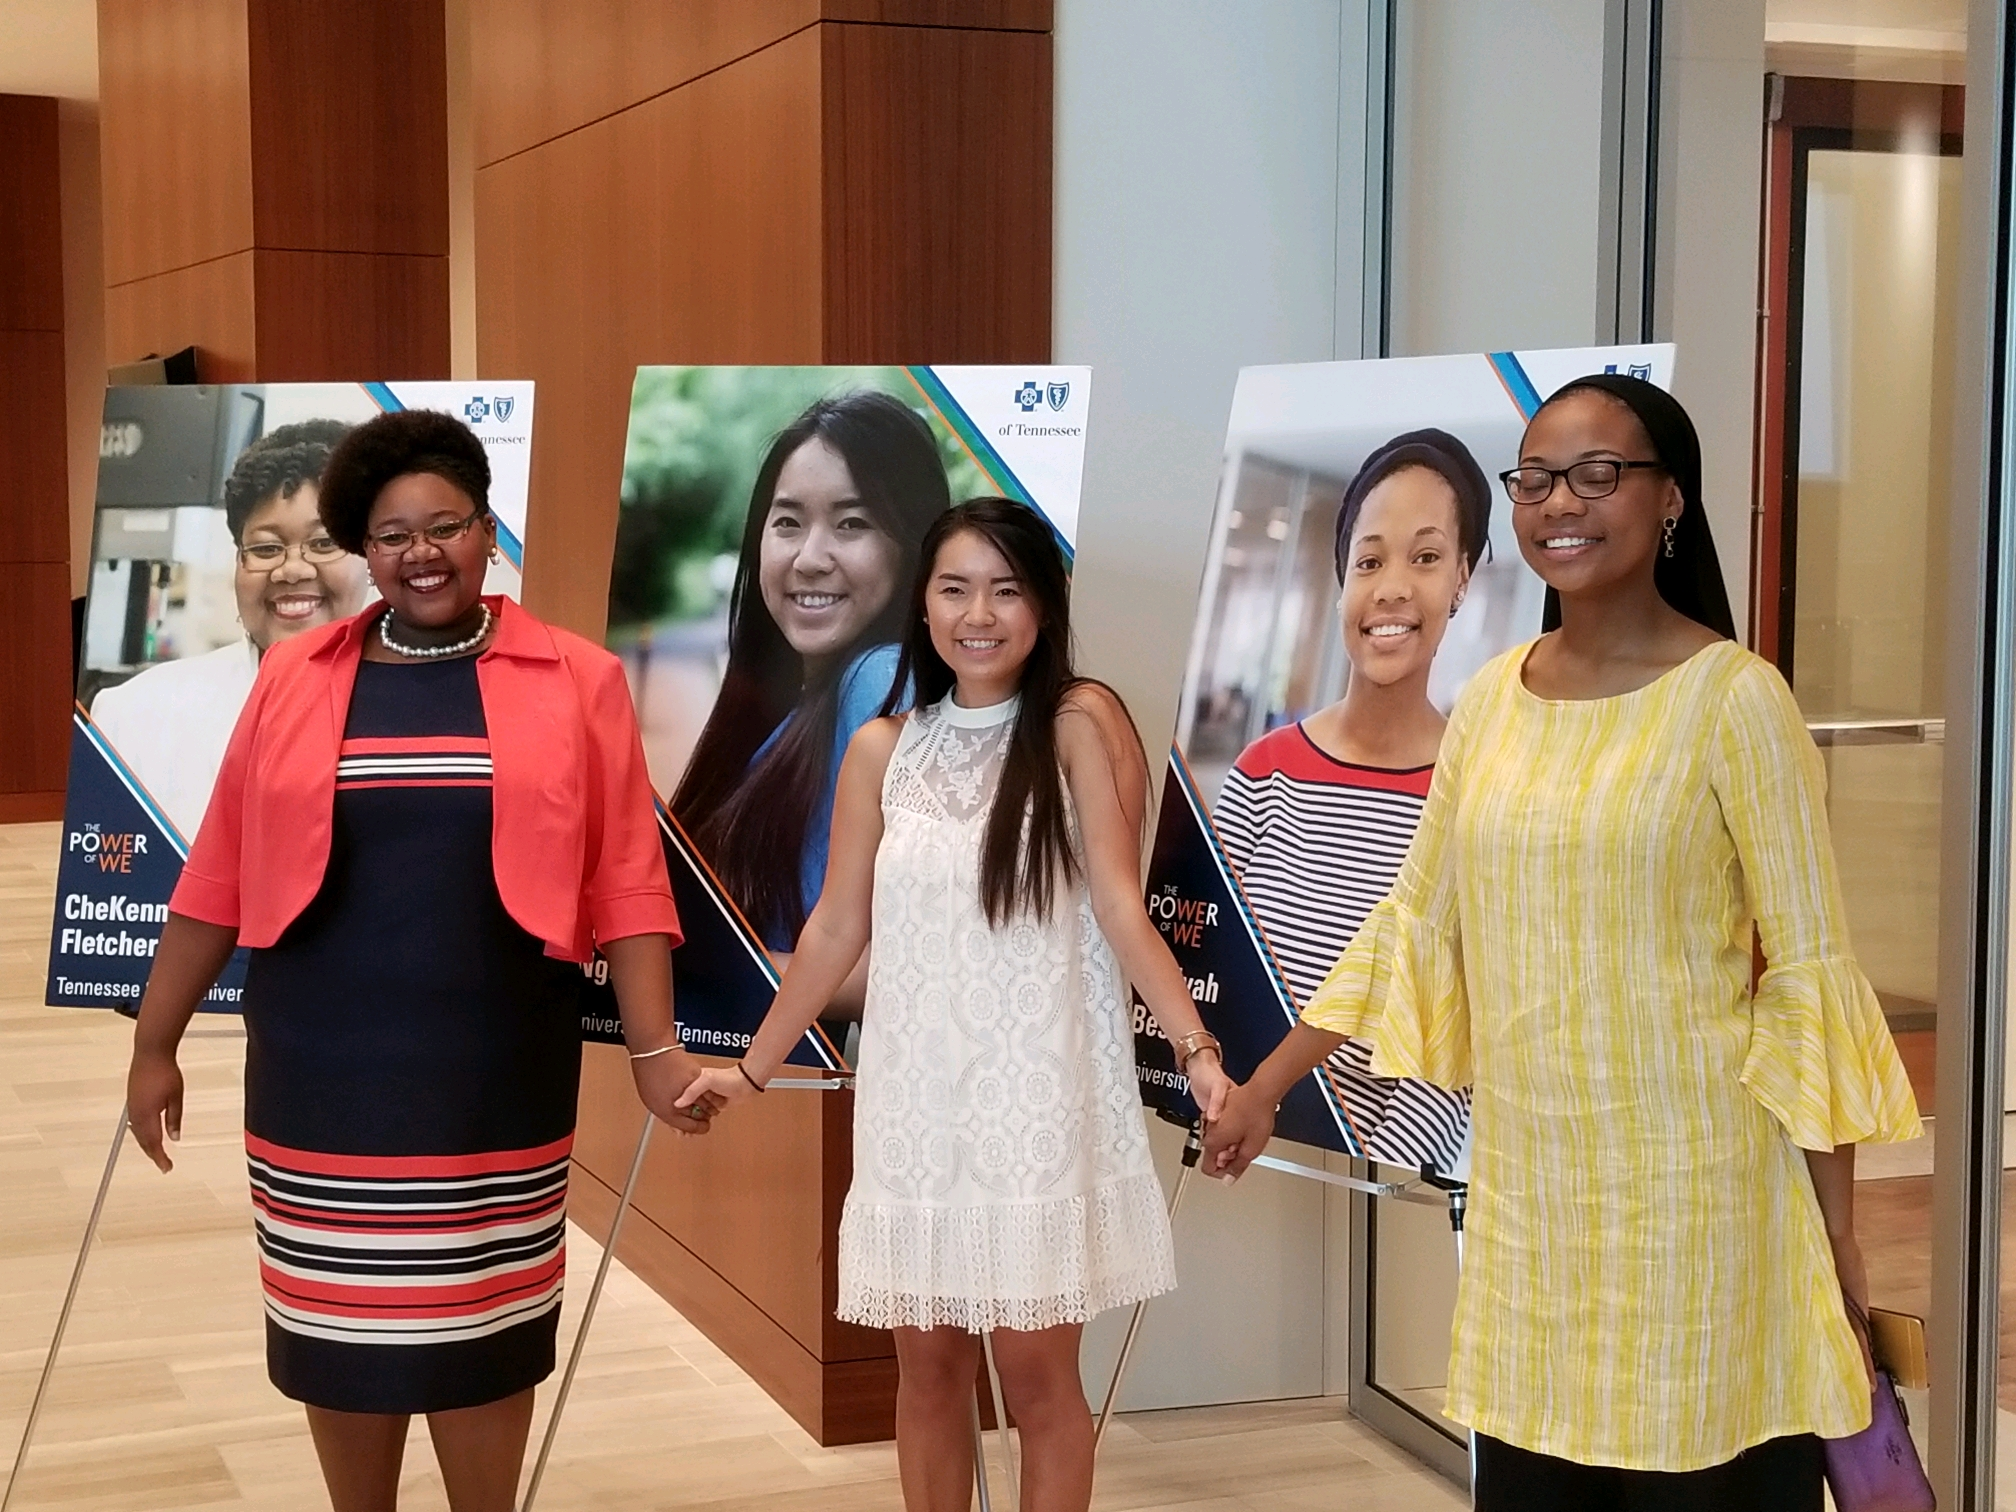 Pictured above are the 2017 Diversity Scholarship recipients representing the West, Middle, and East regions of Tennessee.